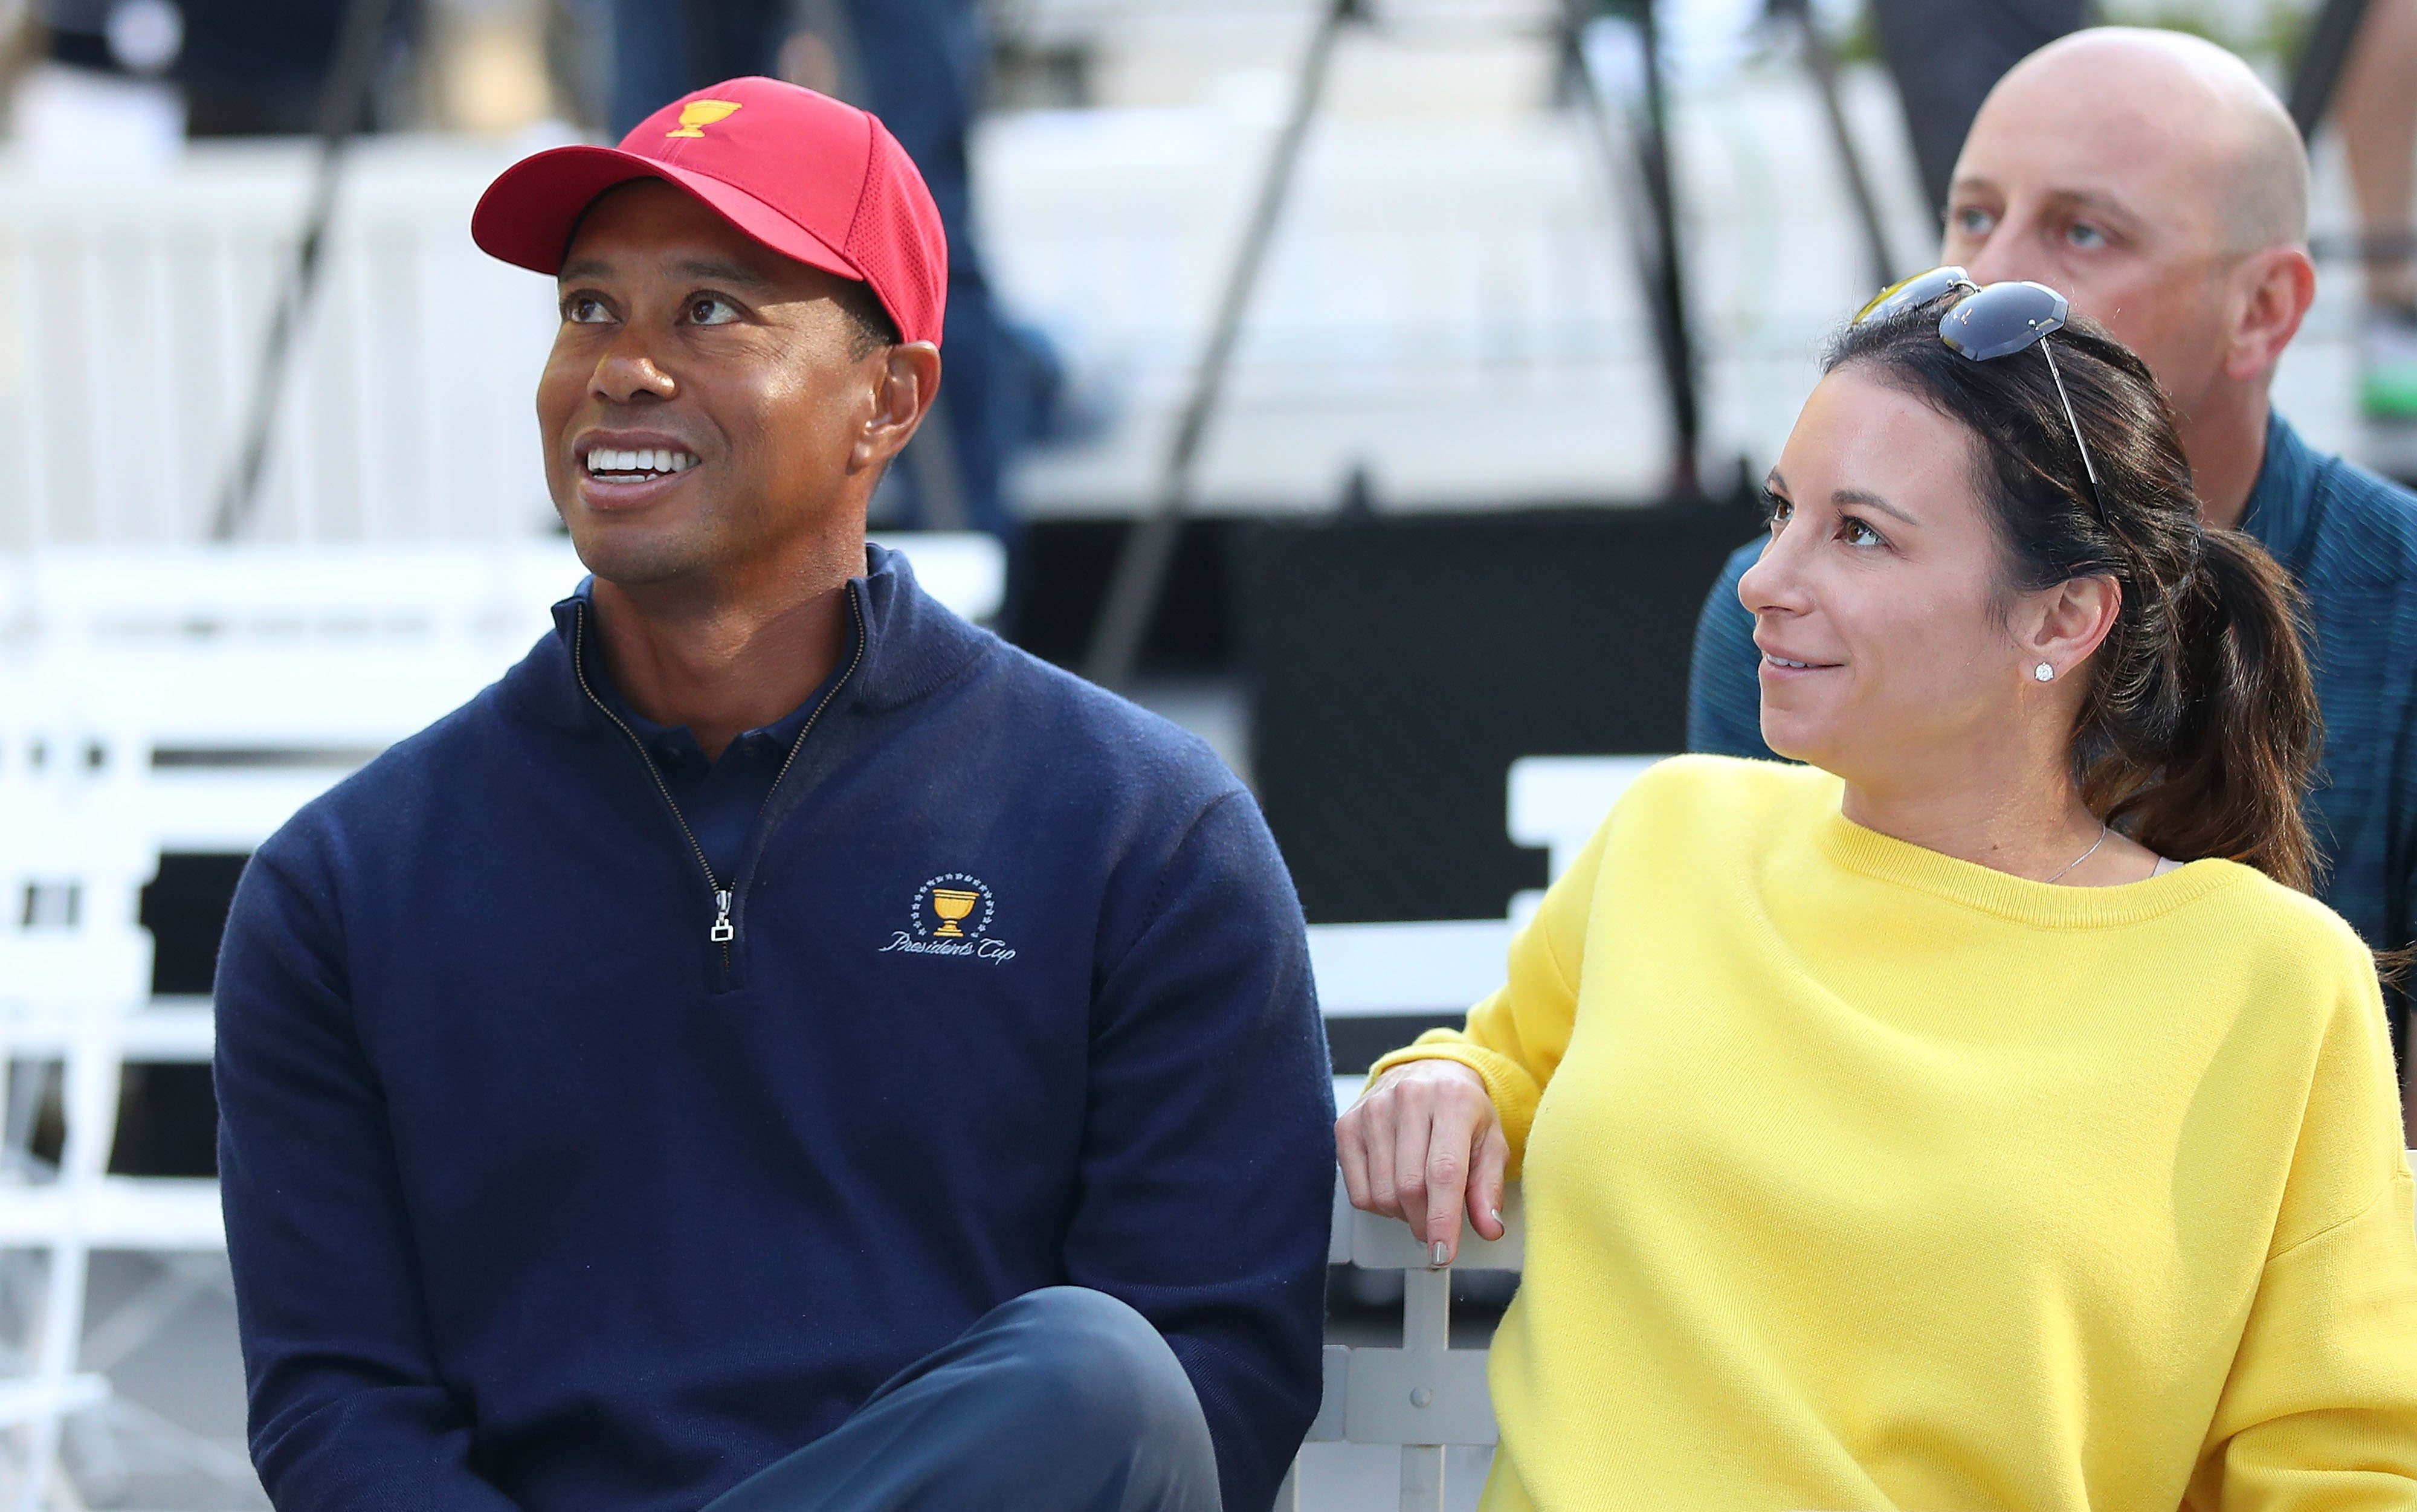 Image Credits: Getty Images / Scott Barbour | Tiger Woods and his girlfriend Erica Herman look on during a Presidents Cup media opportunity at the Yarra Promenade on December 5, 2018 in Melbourne, Australia. The Presidents Cup 2019 will be held on December 9-15, 2019, when it returns to the prestigious Royal Melbourne Golf Club in Australia.